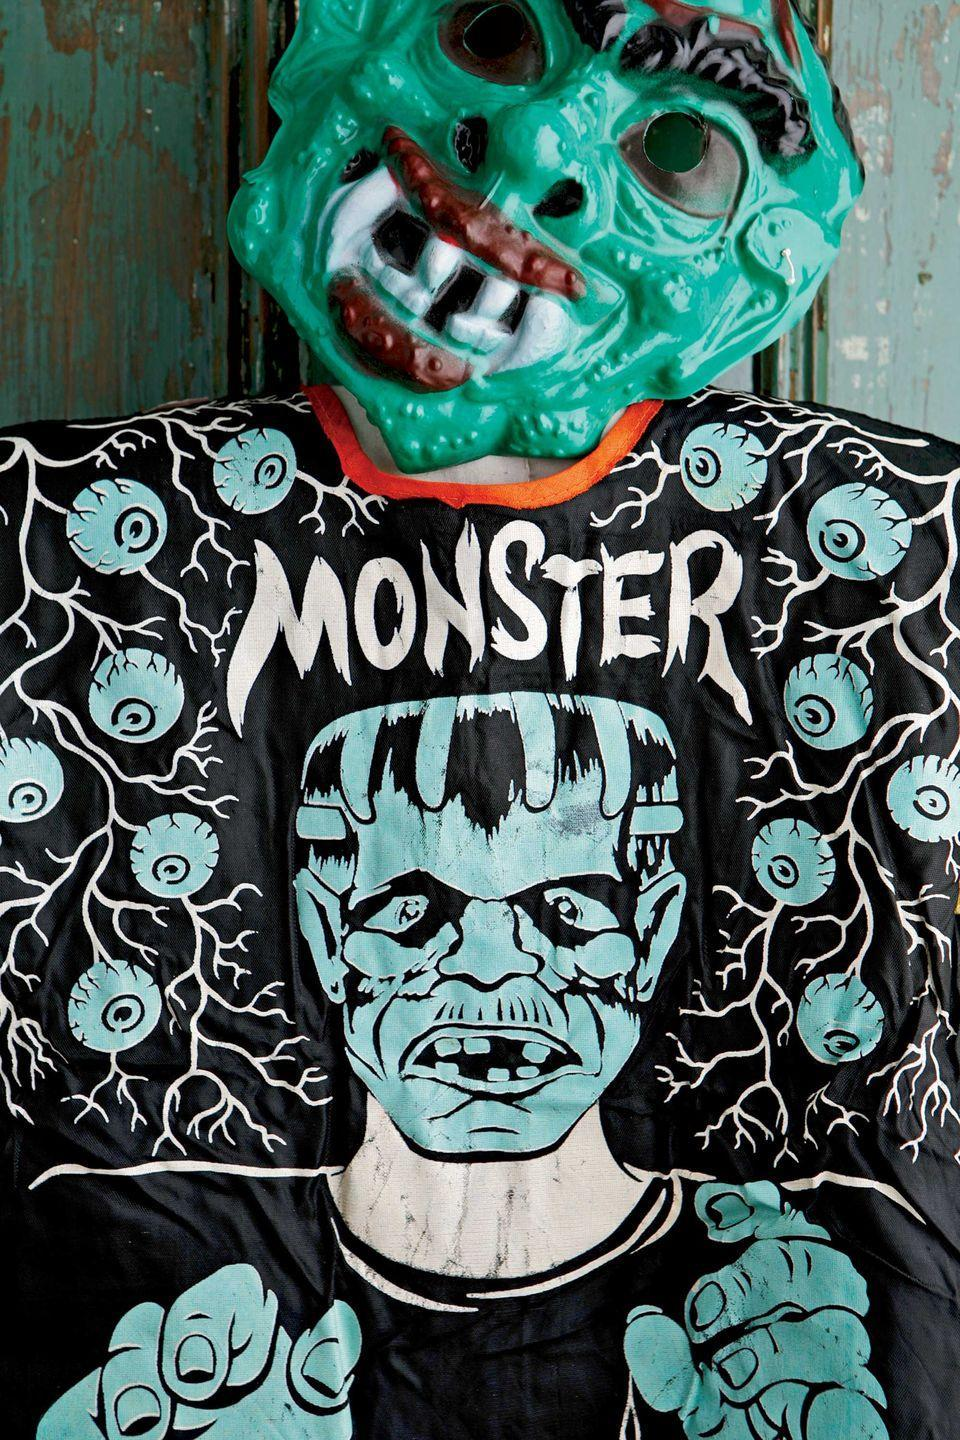 <p>This rather graphic monster costume, with eyeballs printed on its fabric for added creepiness, is from the 1960s. The costume includes a more modern hard plastic mask.</p>